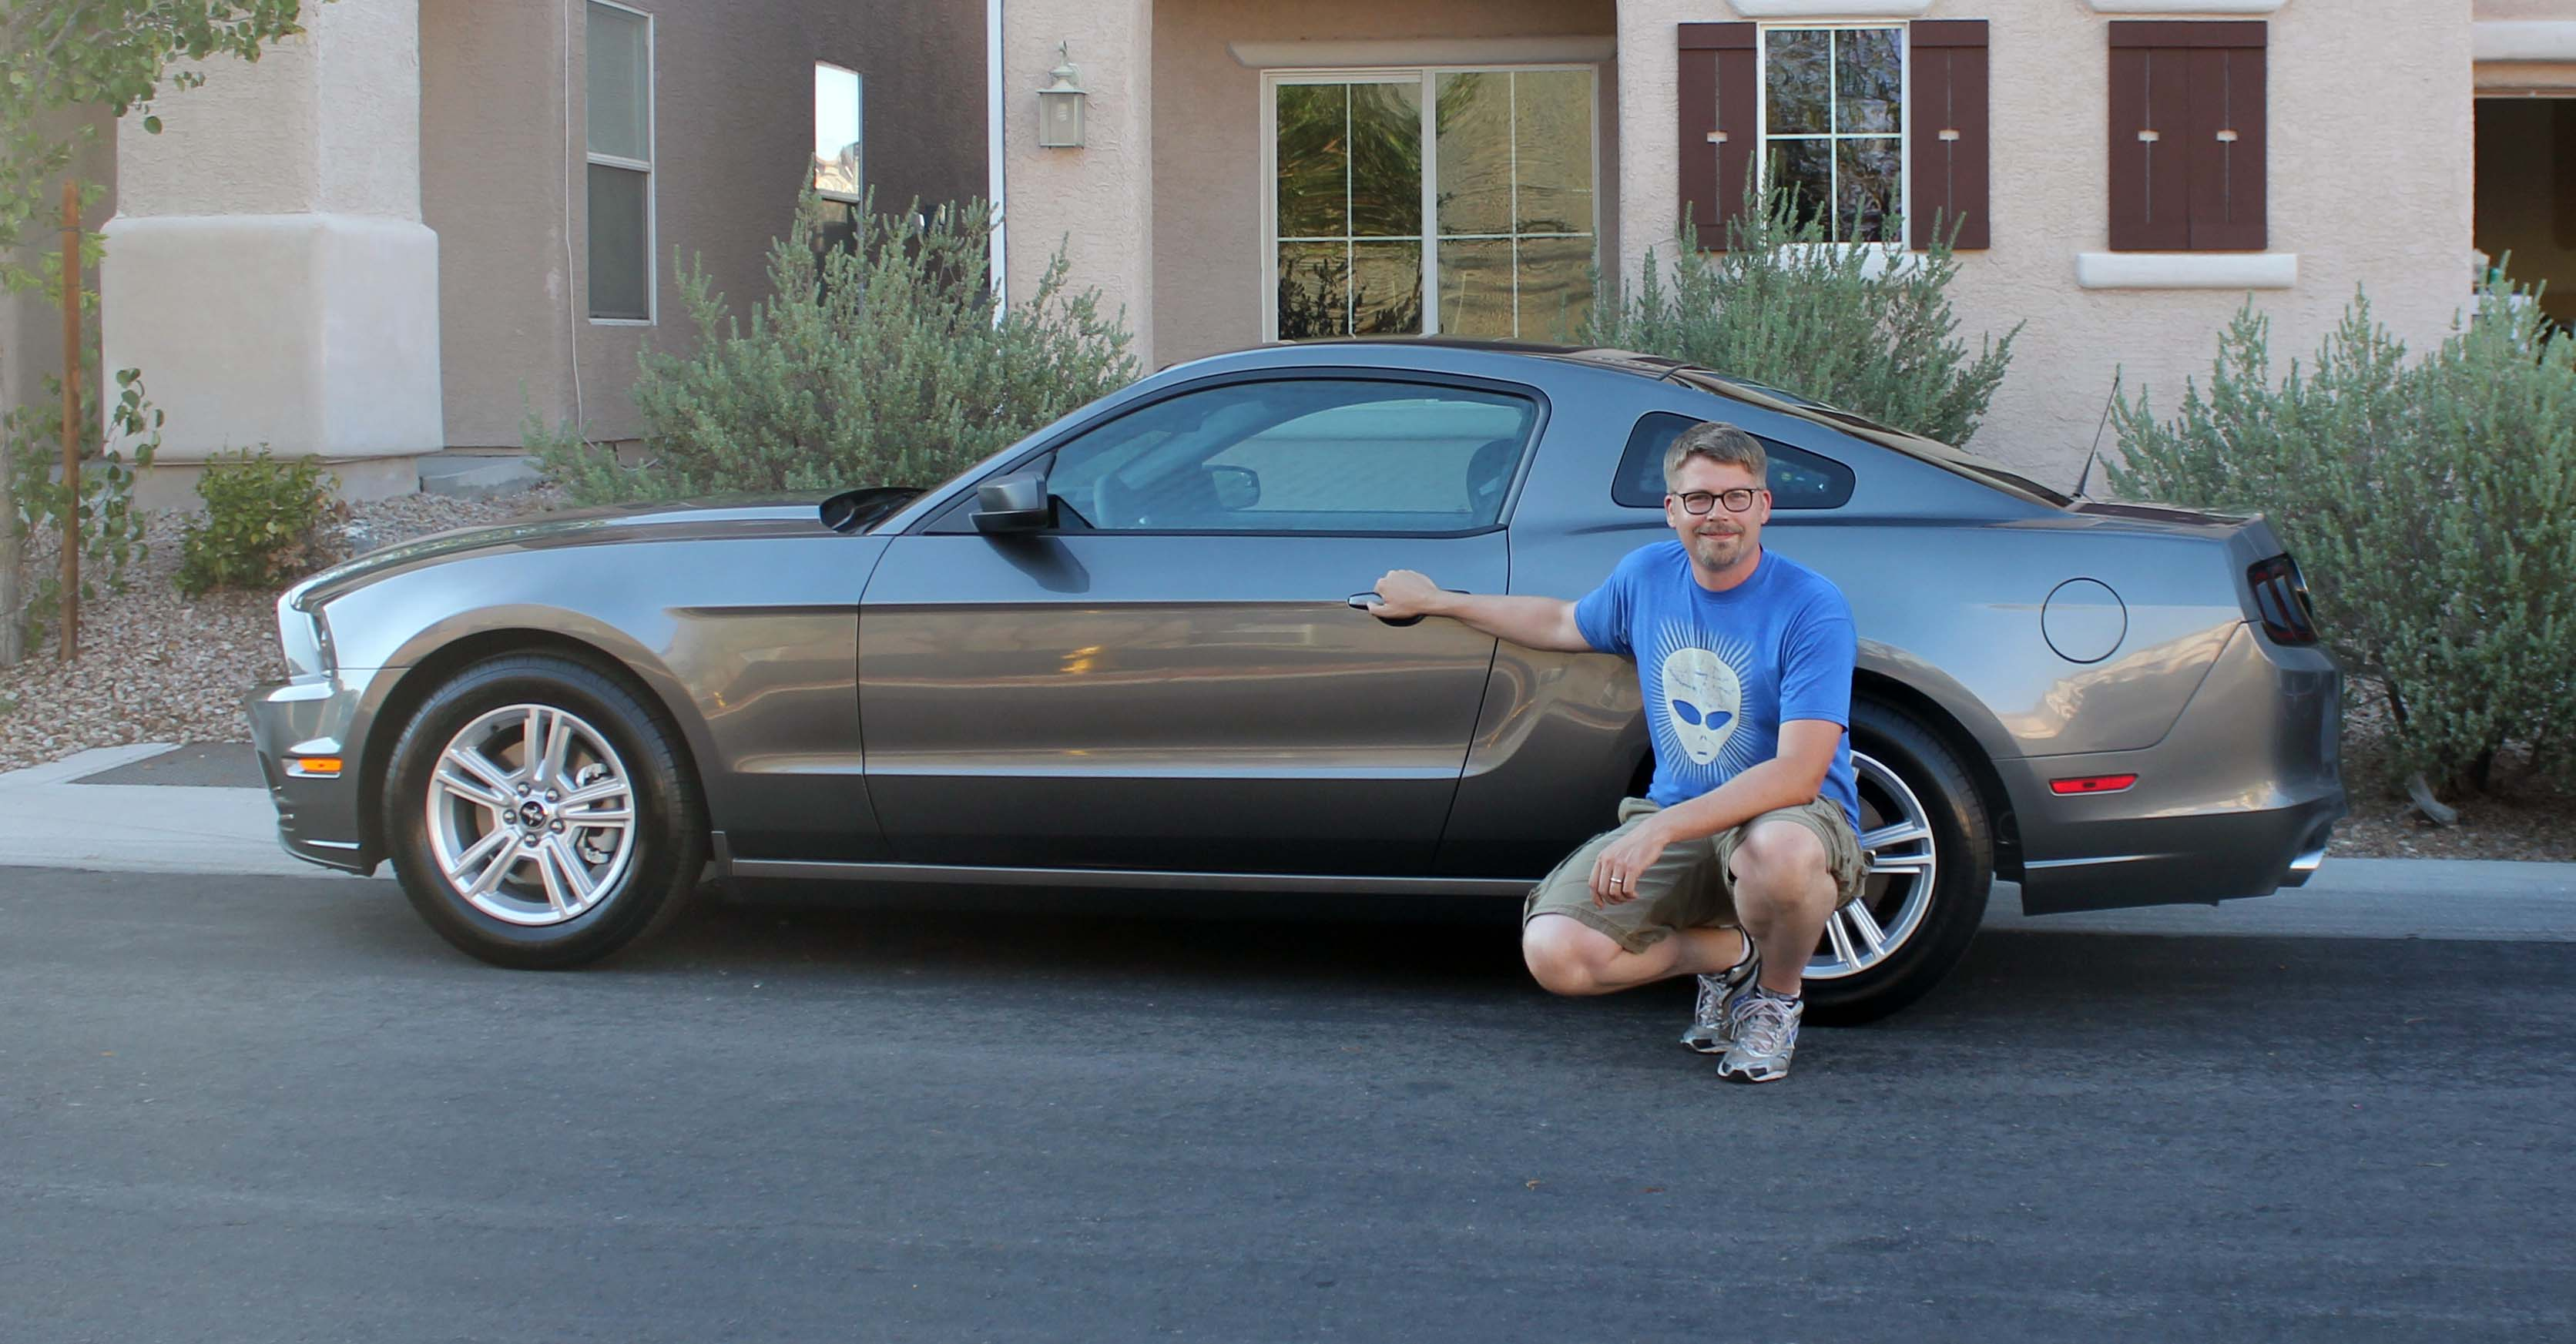 Click image for larger version  Name:Mustang_20130713_073001.jpg Views:171 Size:384.5 KB ID:119399